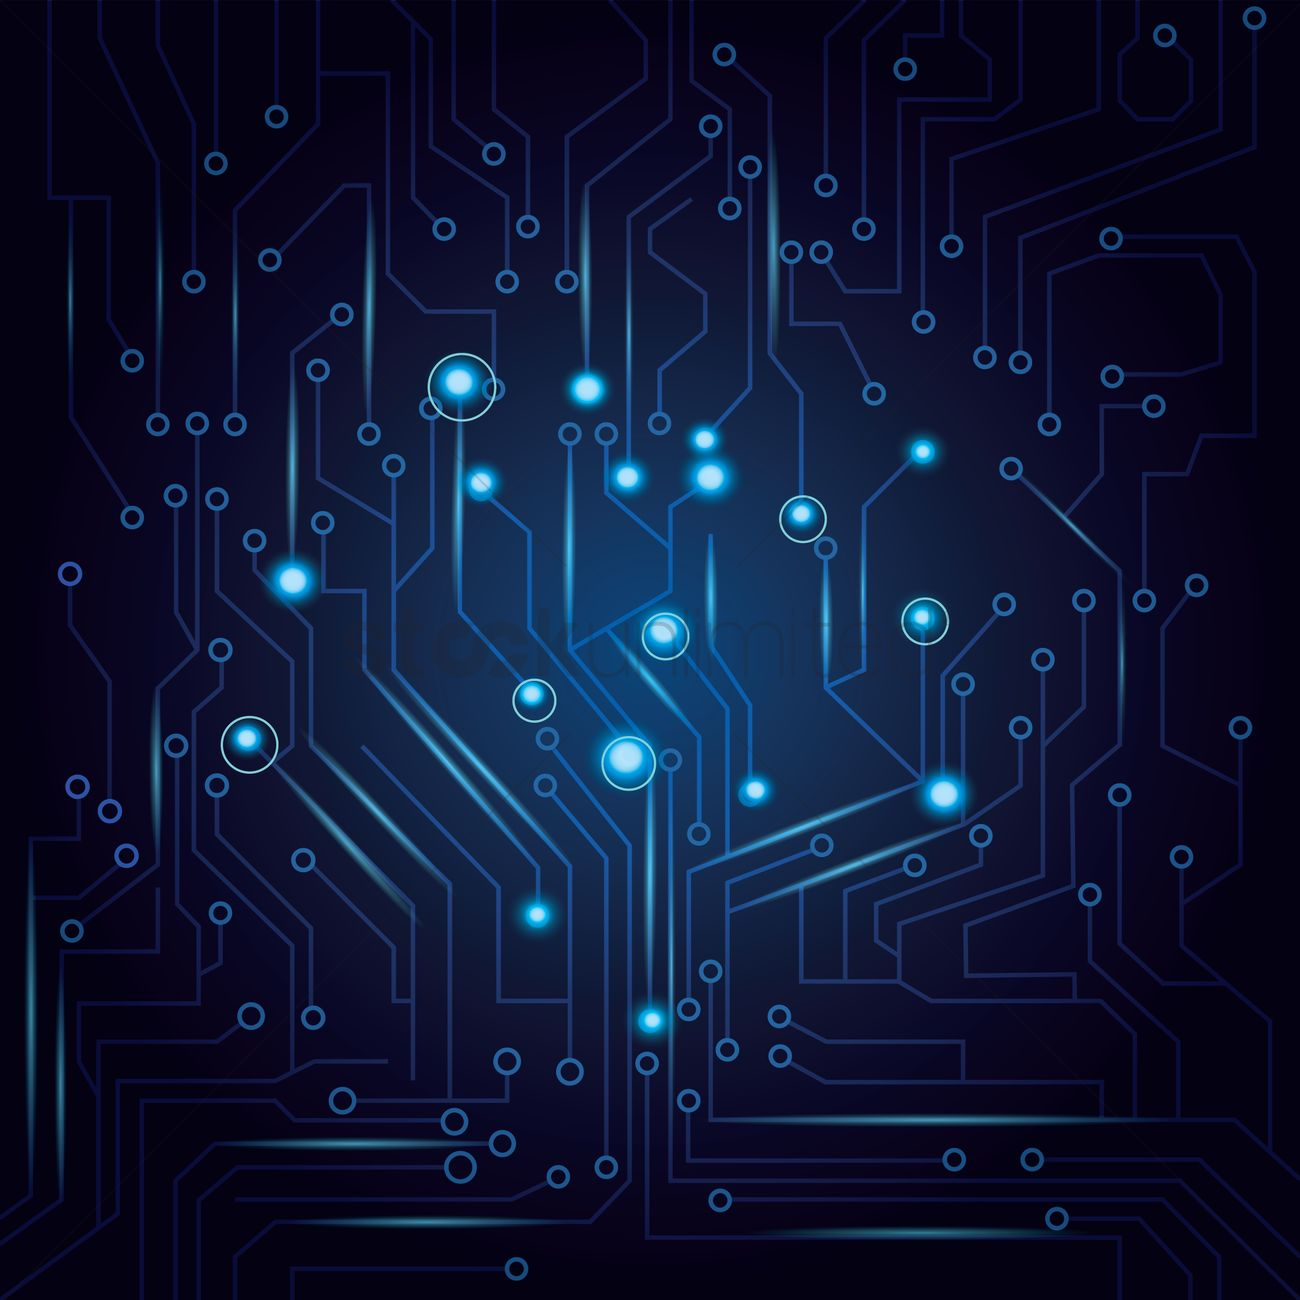 electronic circuit wallpapers 49 wallpapers � hd wallpapers